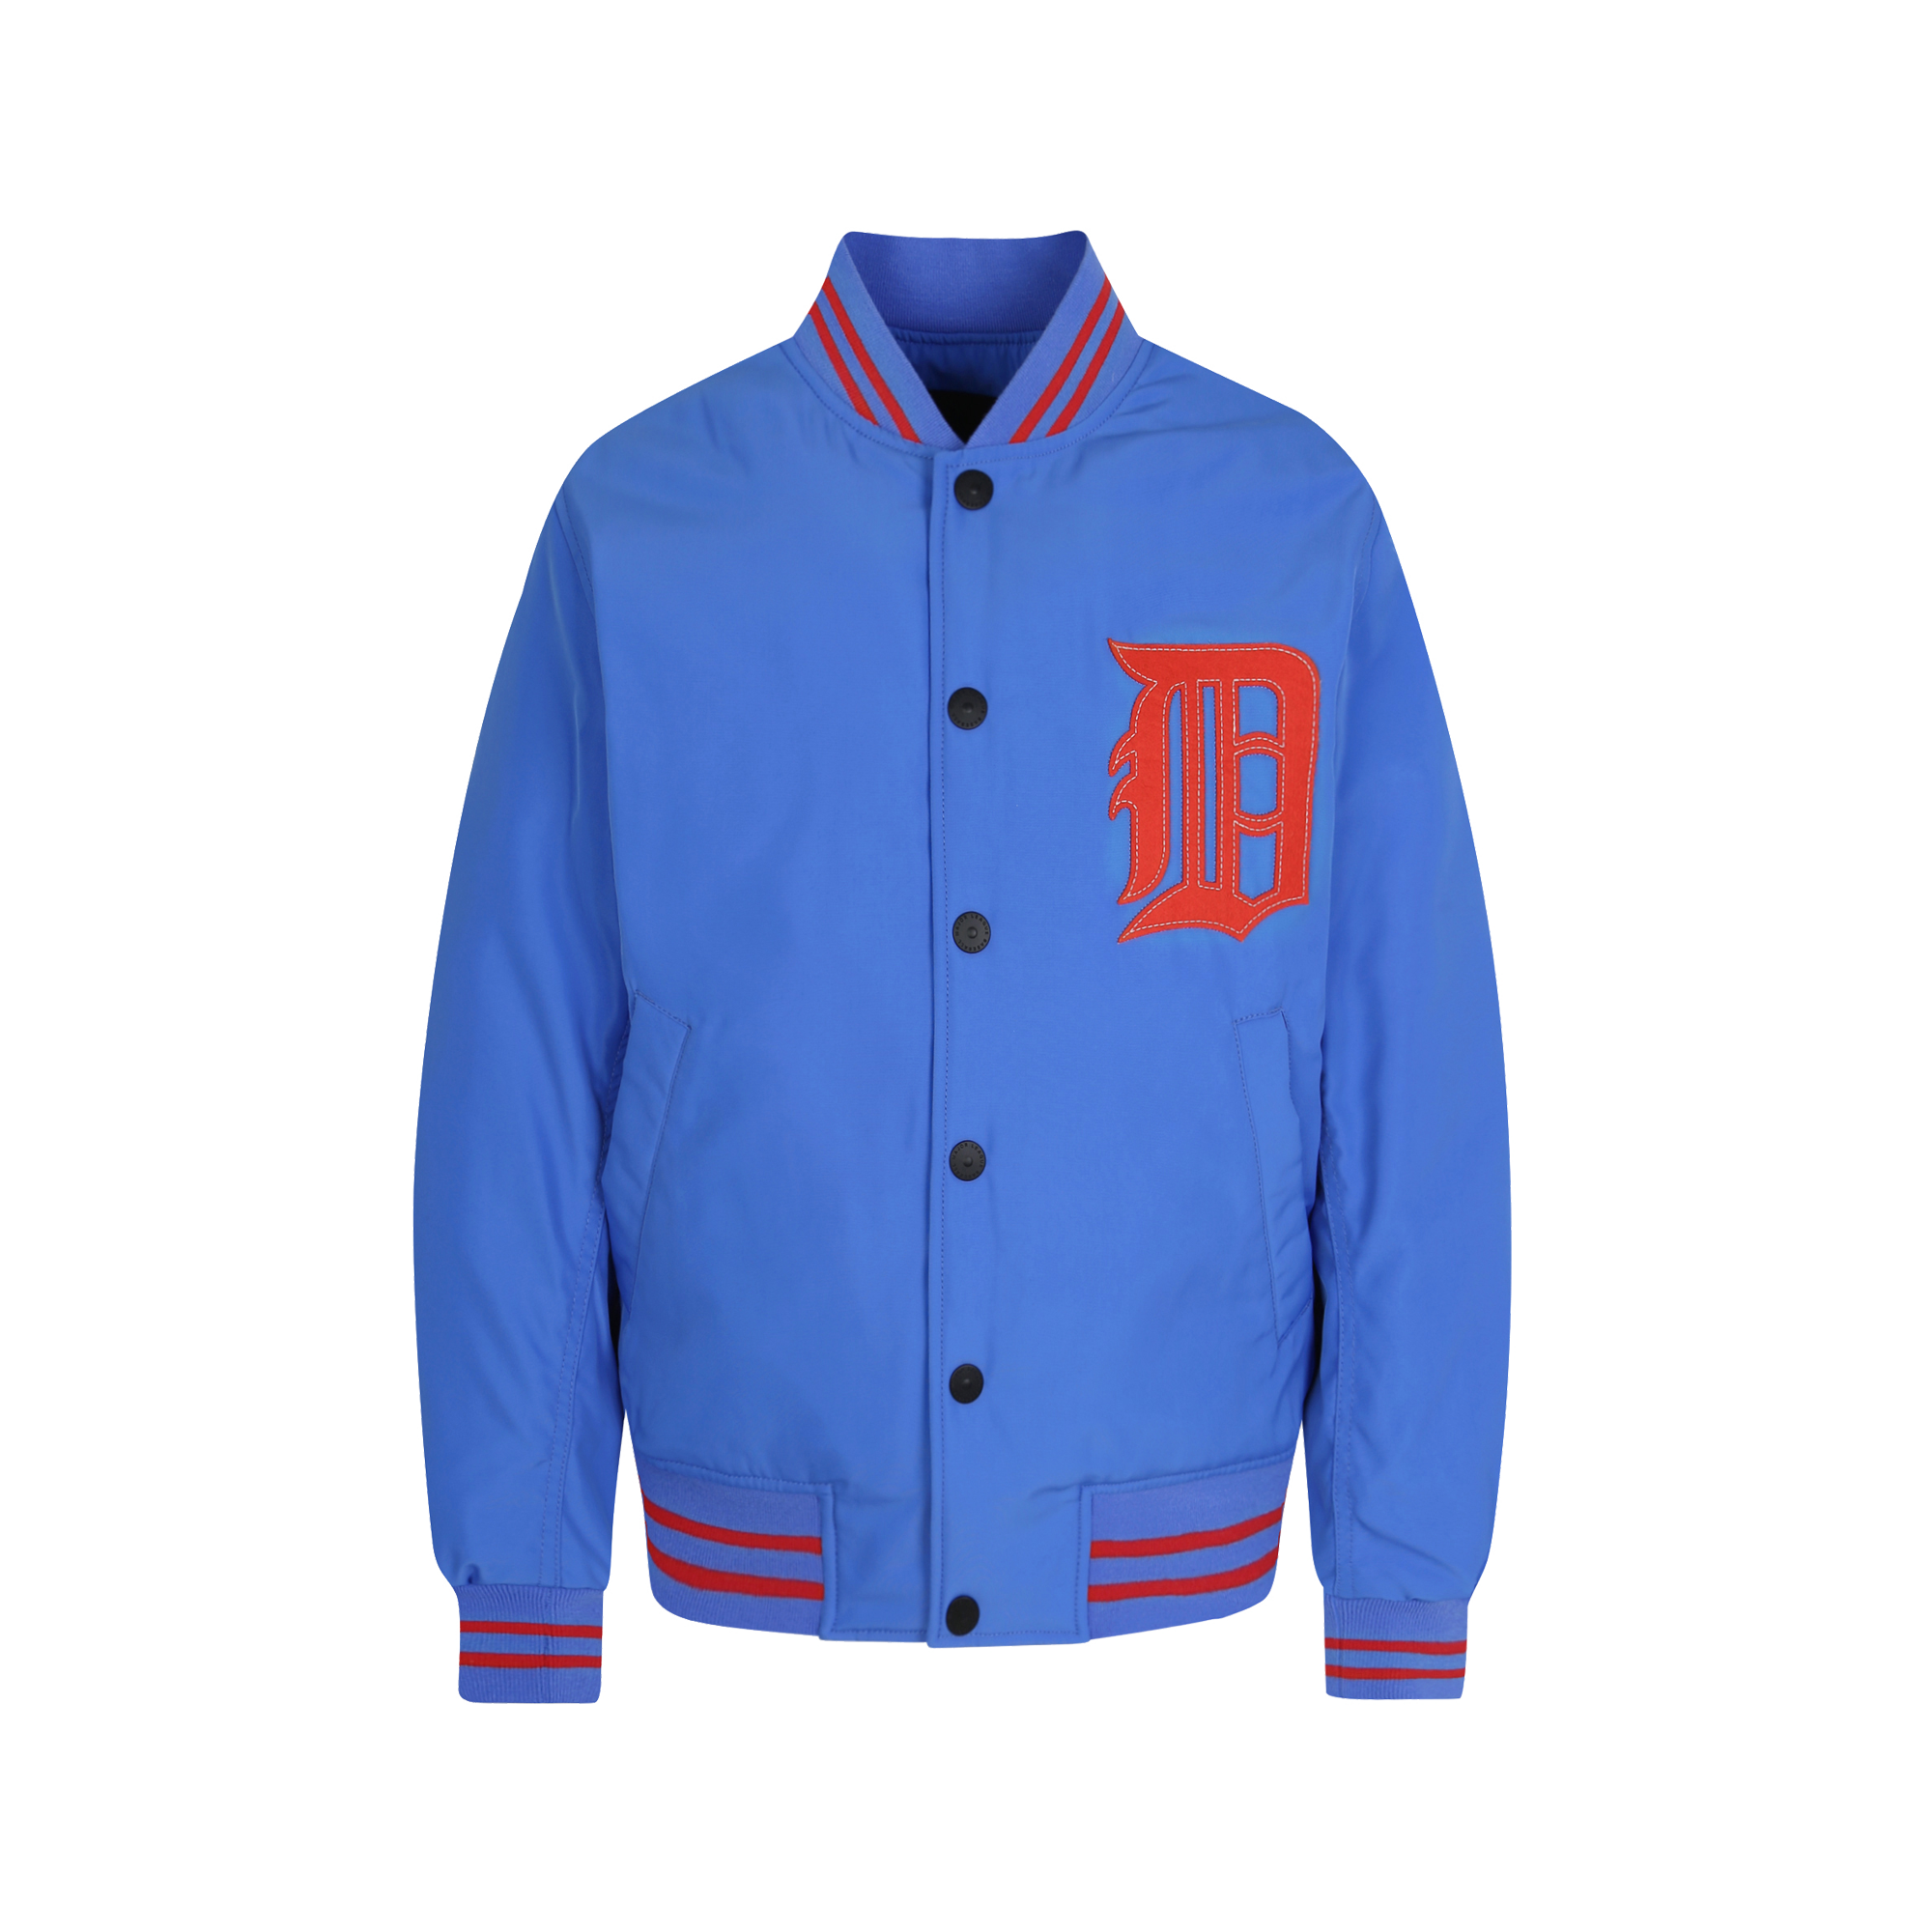 DETROIT TIGERS BIG LOGO BASEBALL PADDED JACKET